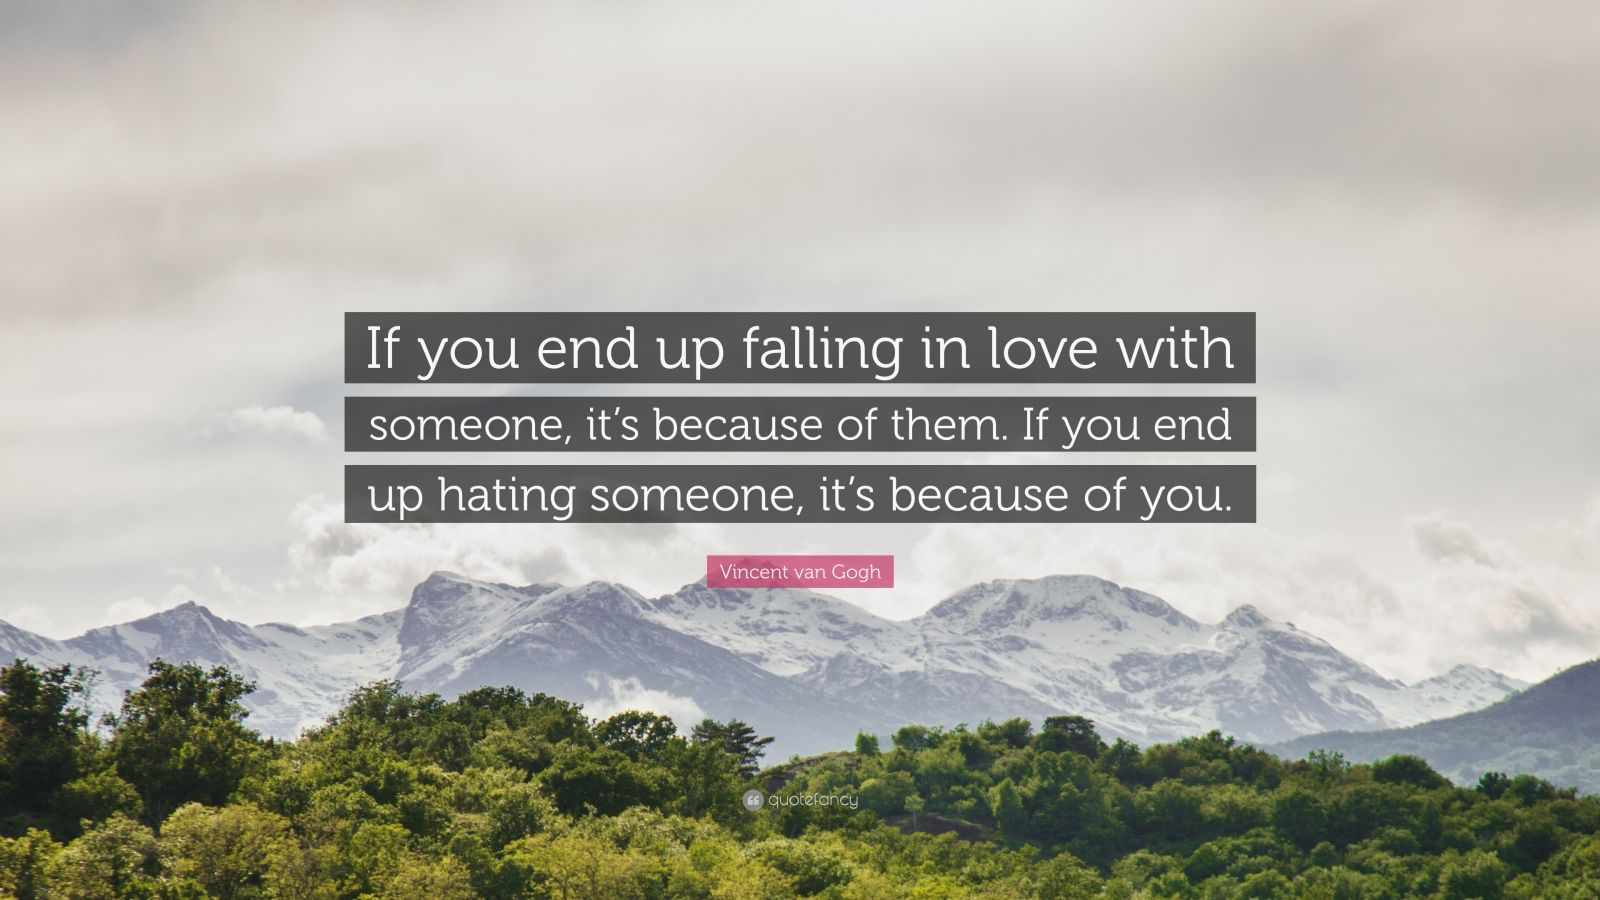 """Vincent van Gogh Quote: """"If you end up falling in love with someone, it's because of them. If you end up hating someone, it's because of you."""""""